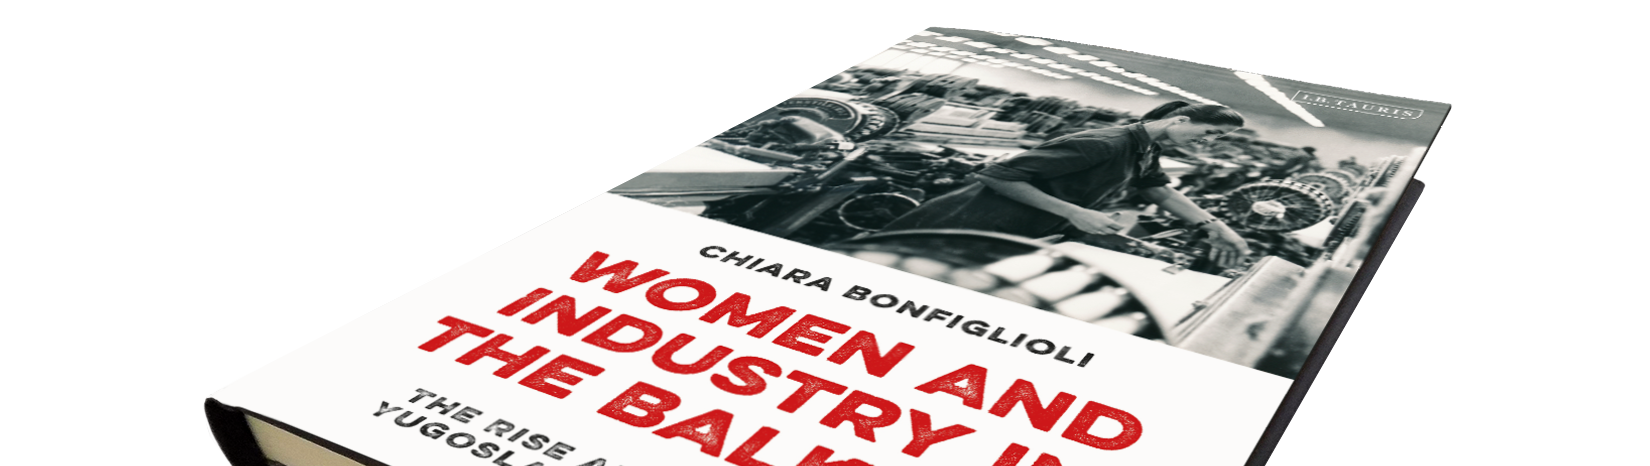 book-image-women-and-industry-in-the-balkan